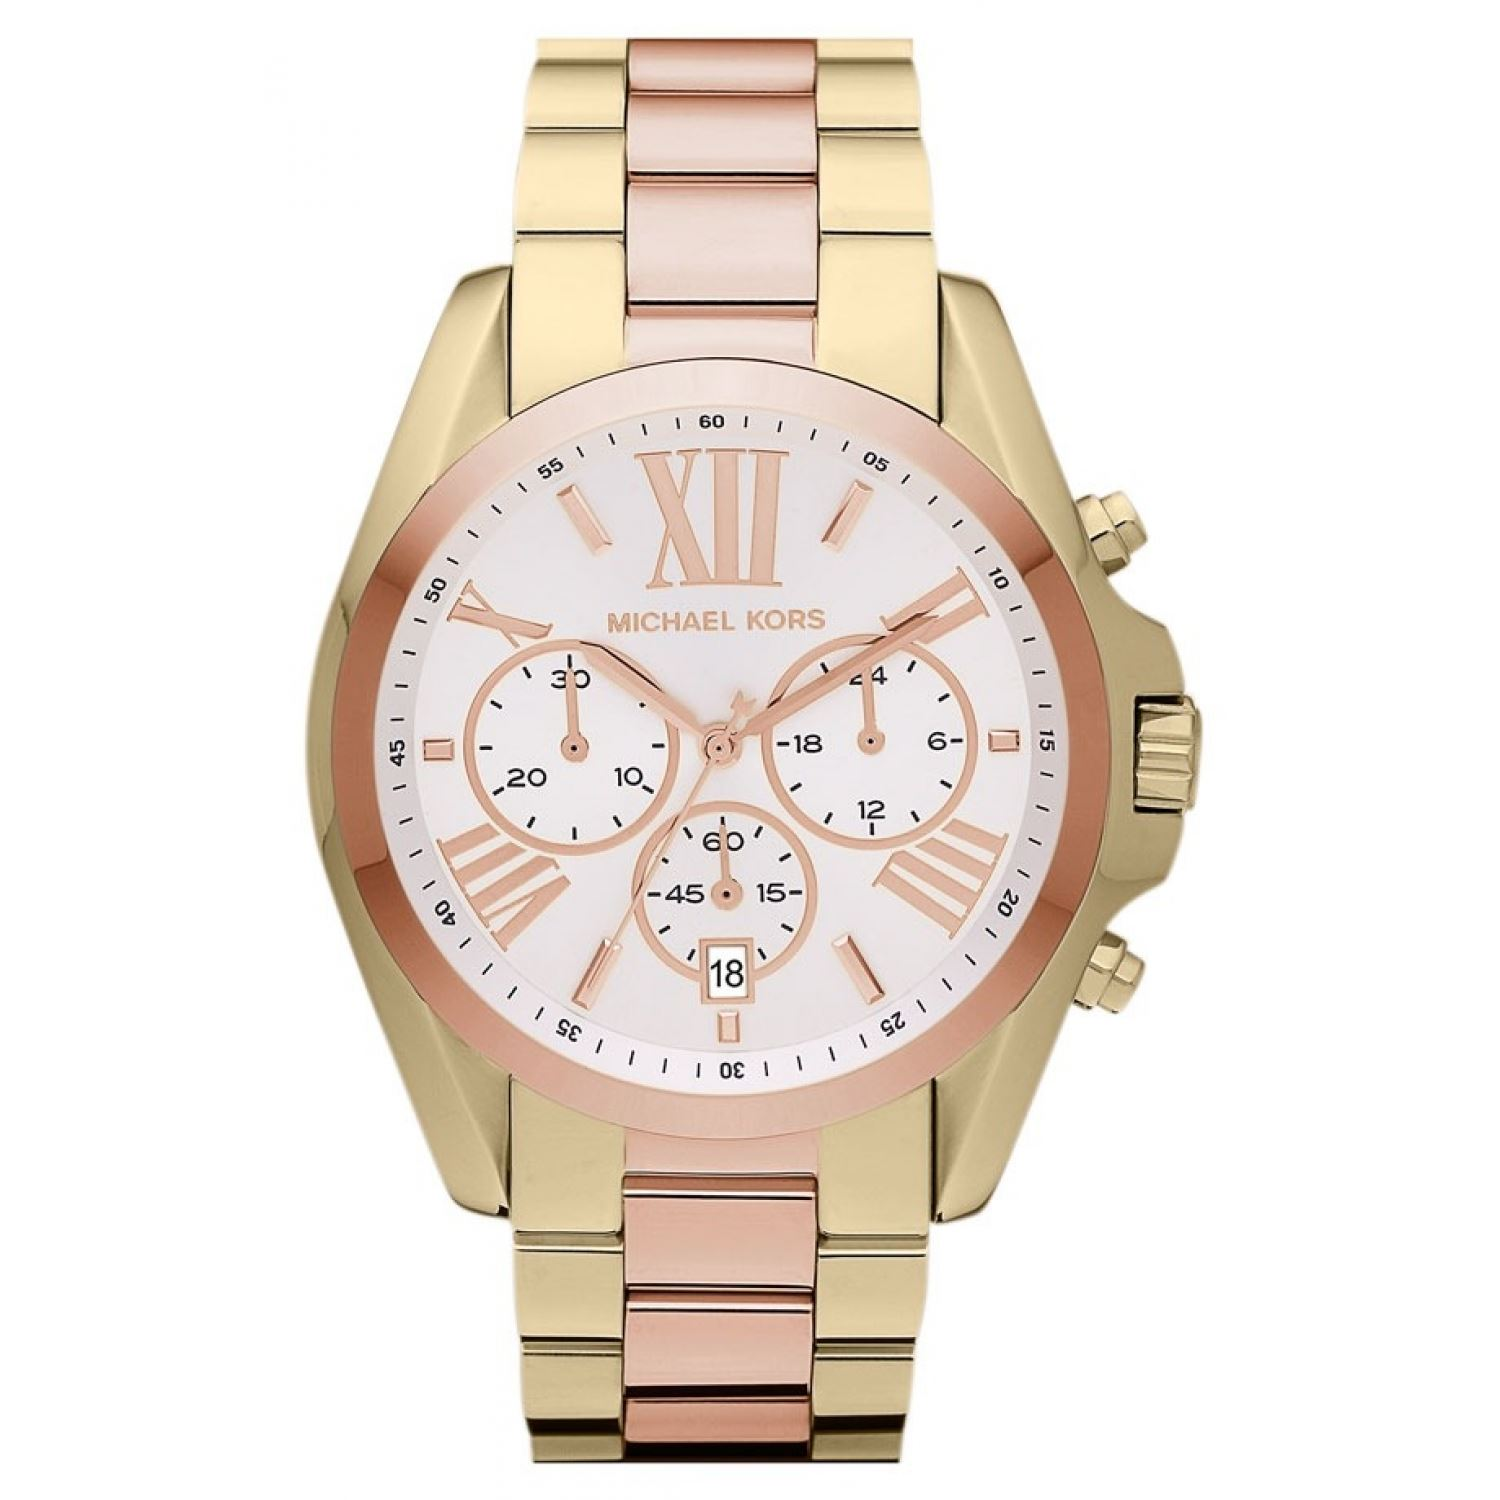 96f6820bc1c9 Details about Michael Kors SMART WATCH RRP £289 Yellow Rose Gold MK5651  Xmas Gift Present UK